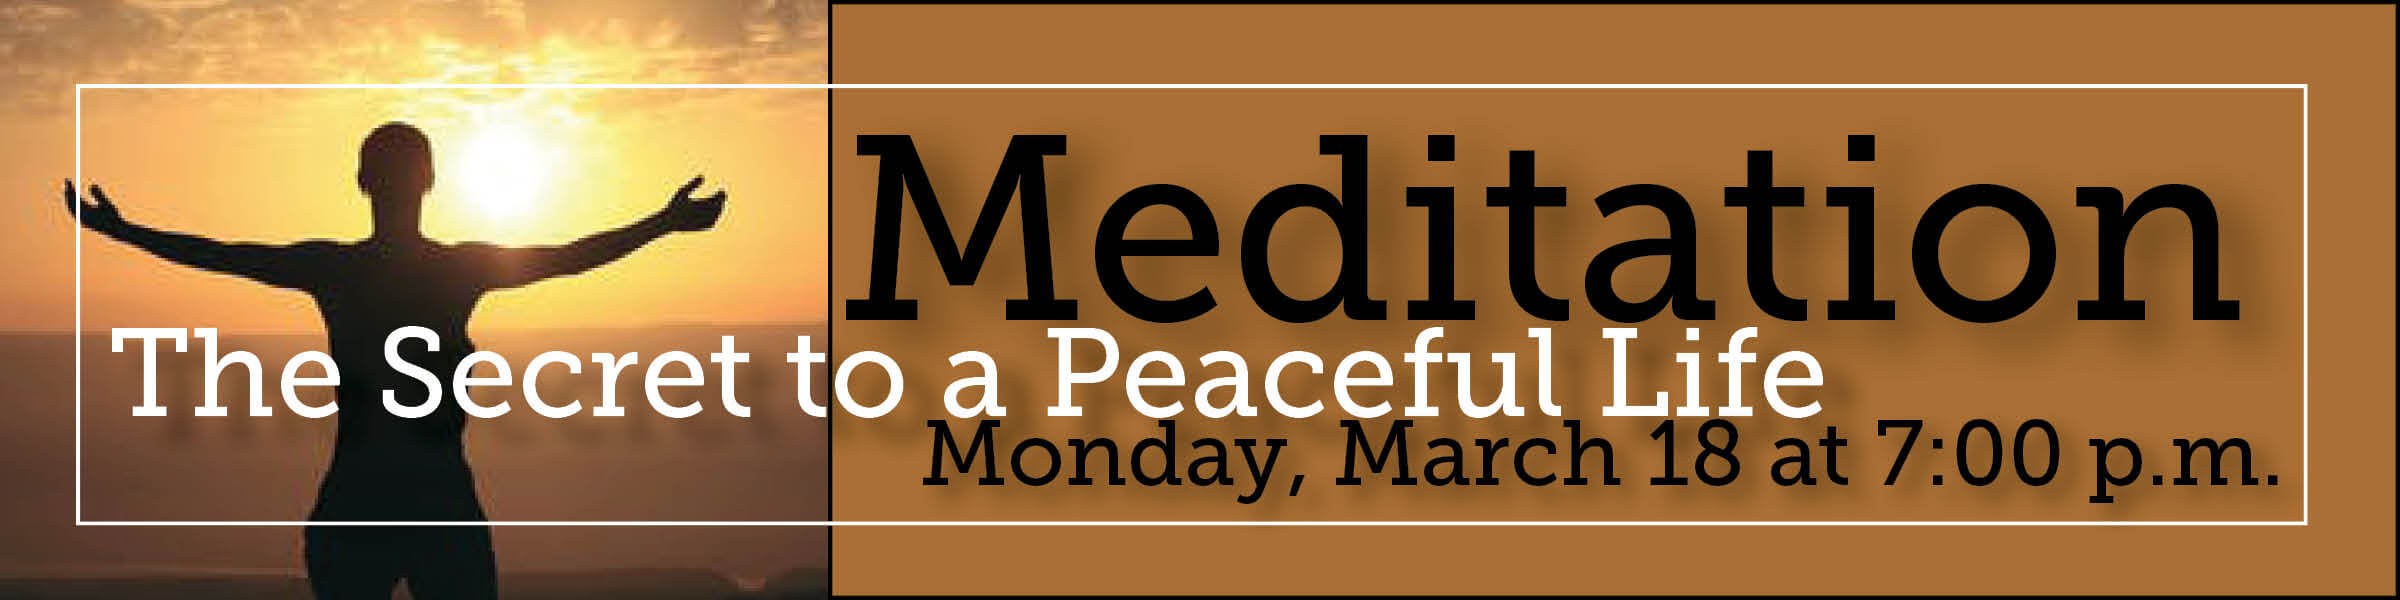 Adult Event | Meditation: The Secret to a Peaceful Life | March 18th @ 7 pm 2019